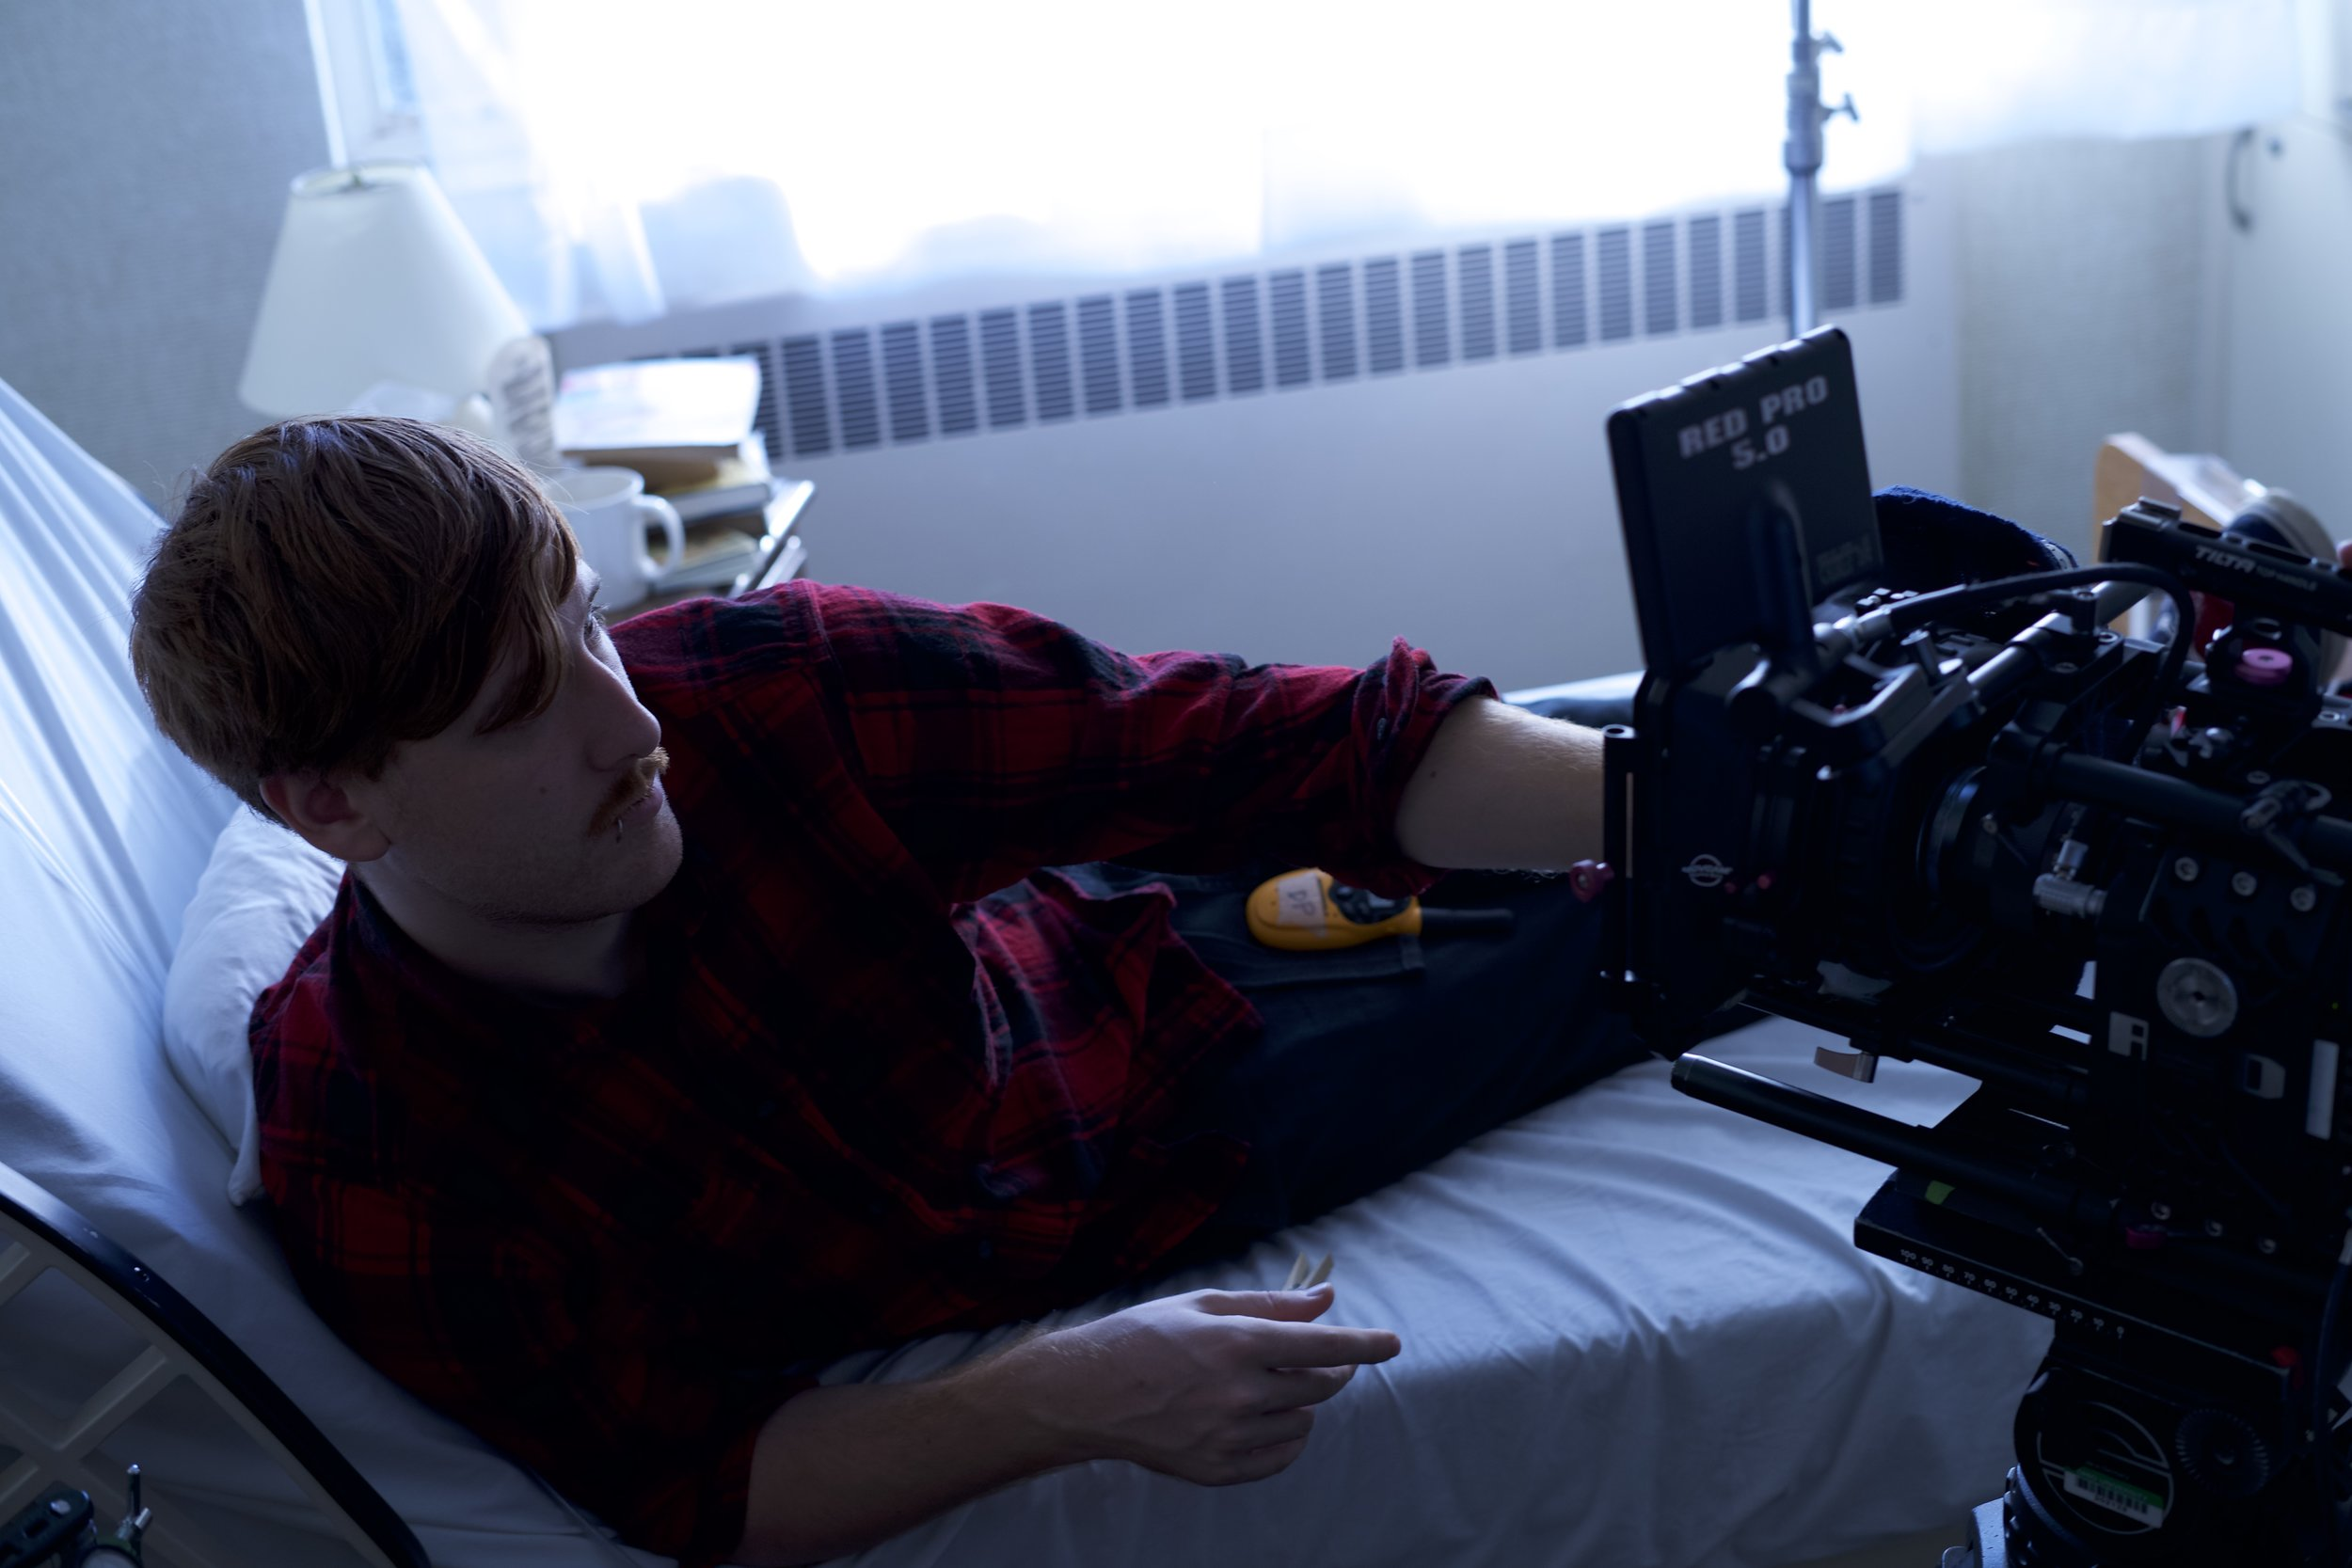 Director of Photography Jacob Midkiff on the set of Applebaum, Eddie Loupe's 2nd Year film